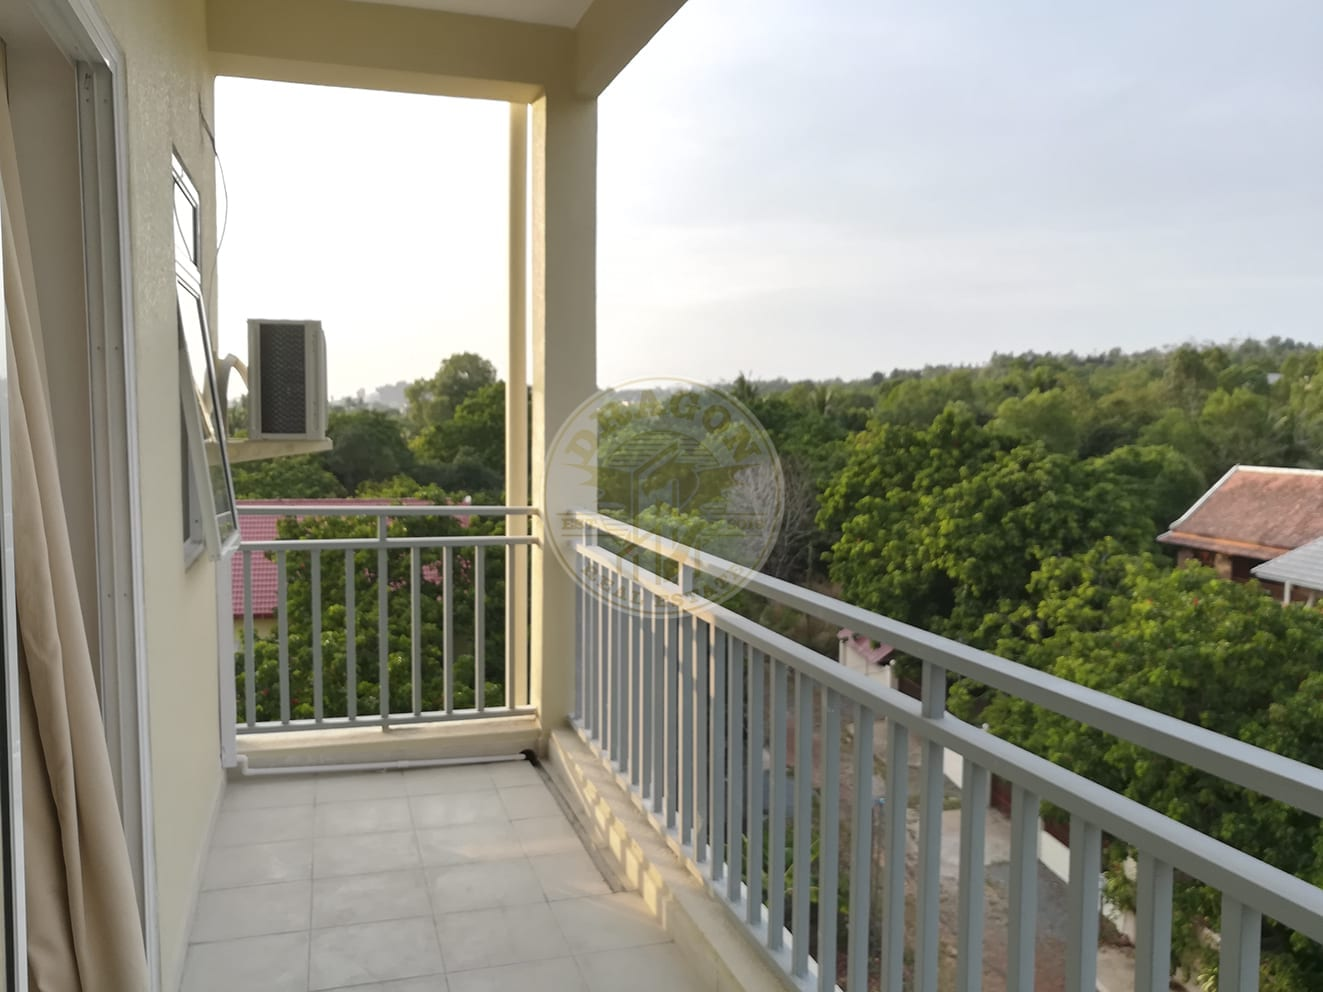 Apartment w/ One balcony for Rent. Sihanoukville Monthly Rental